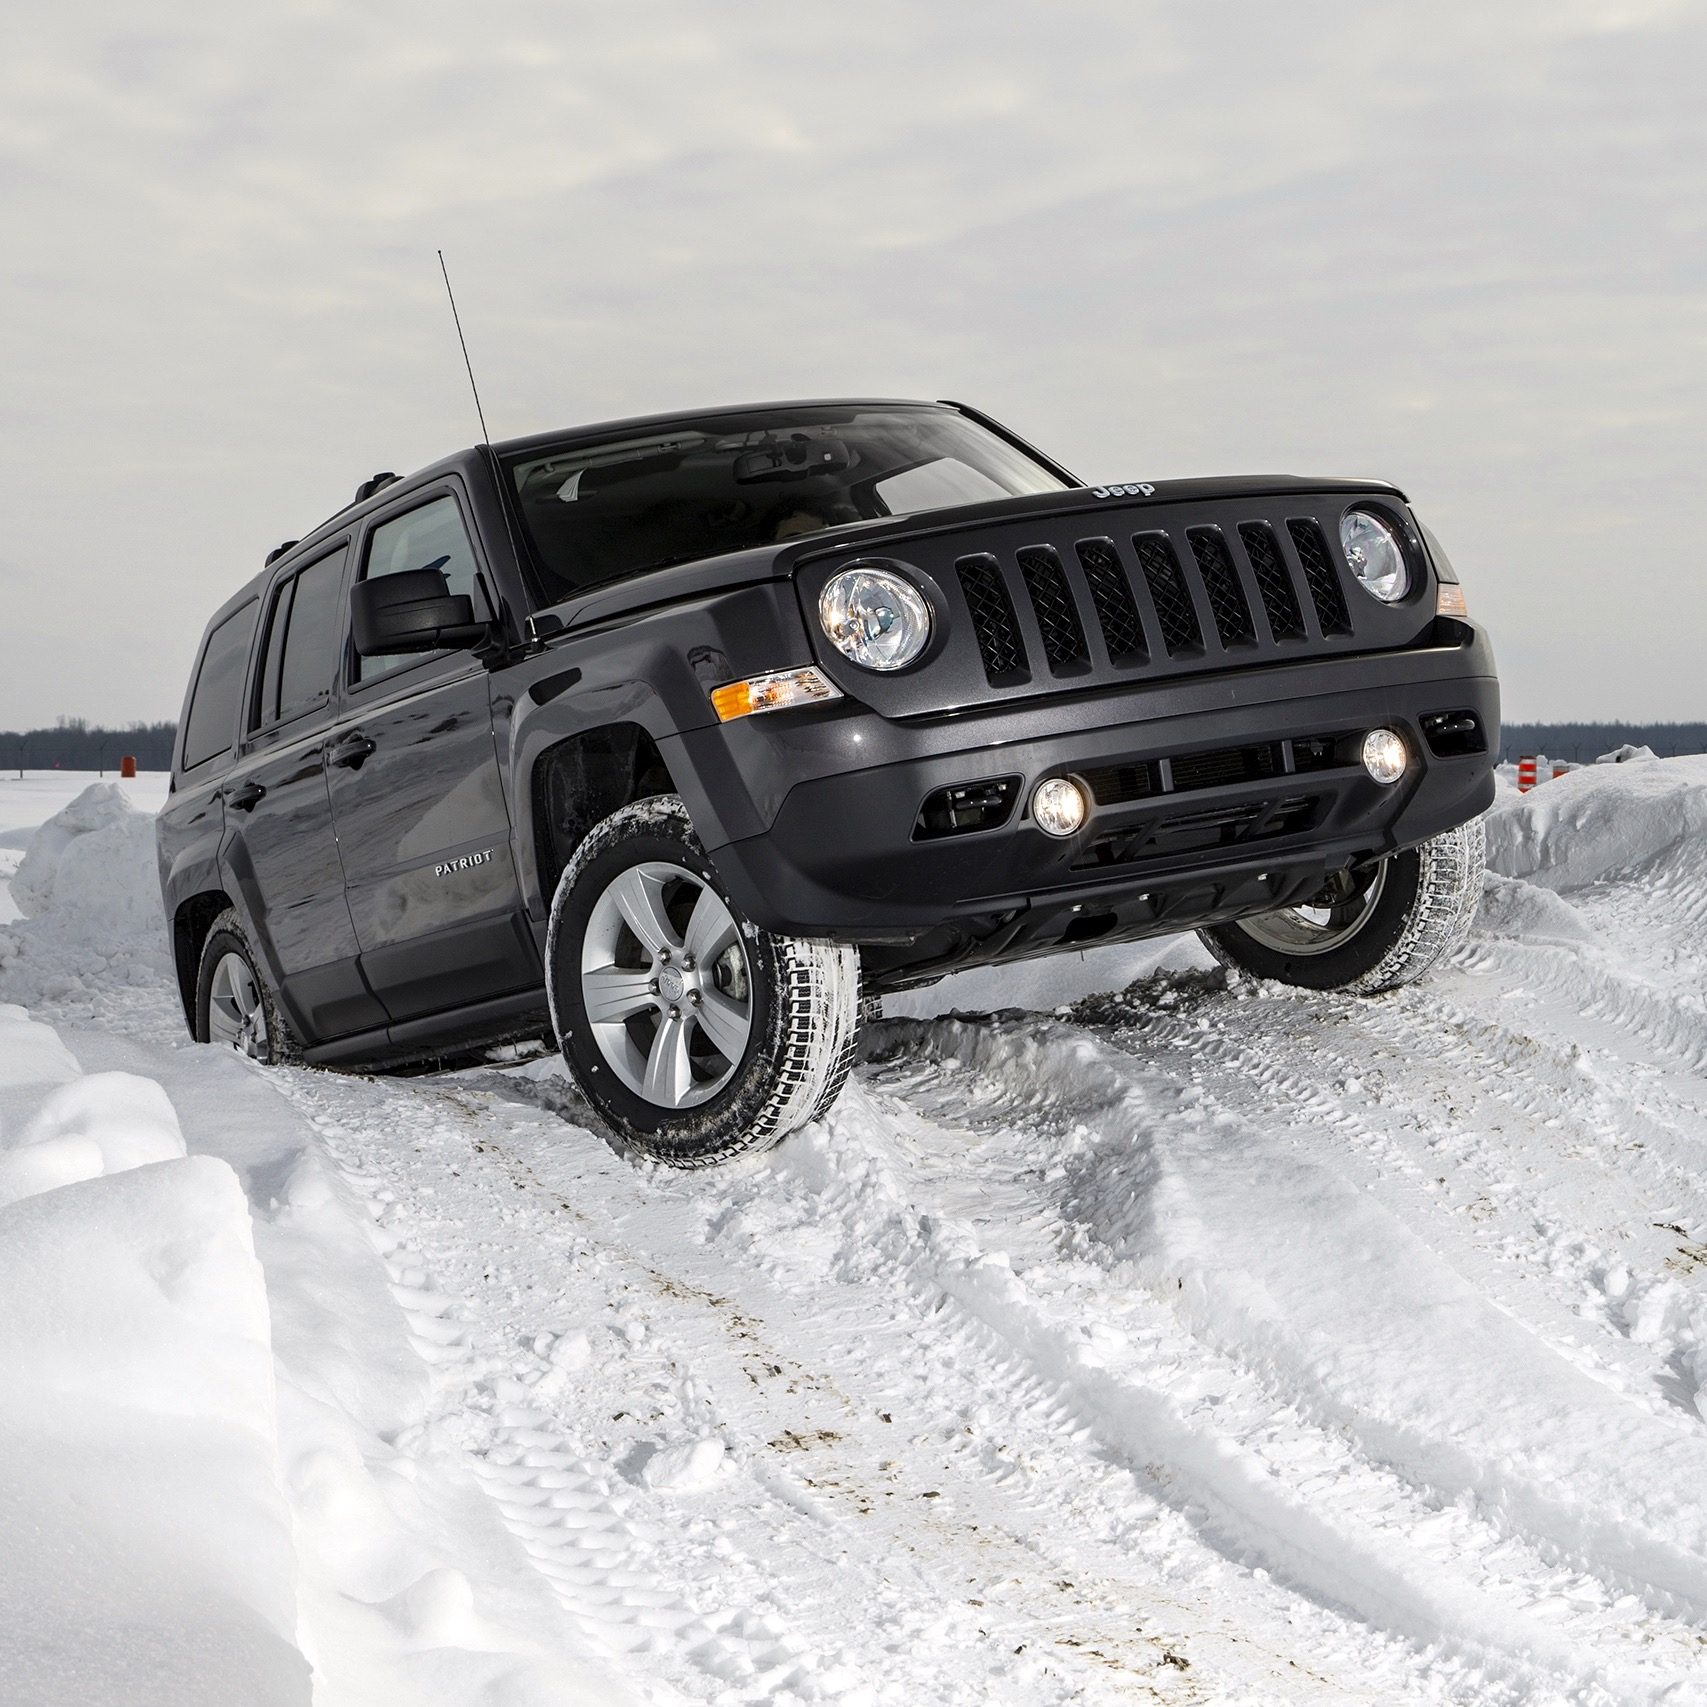 jeep-off-road-snow-13.jpg